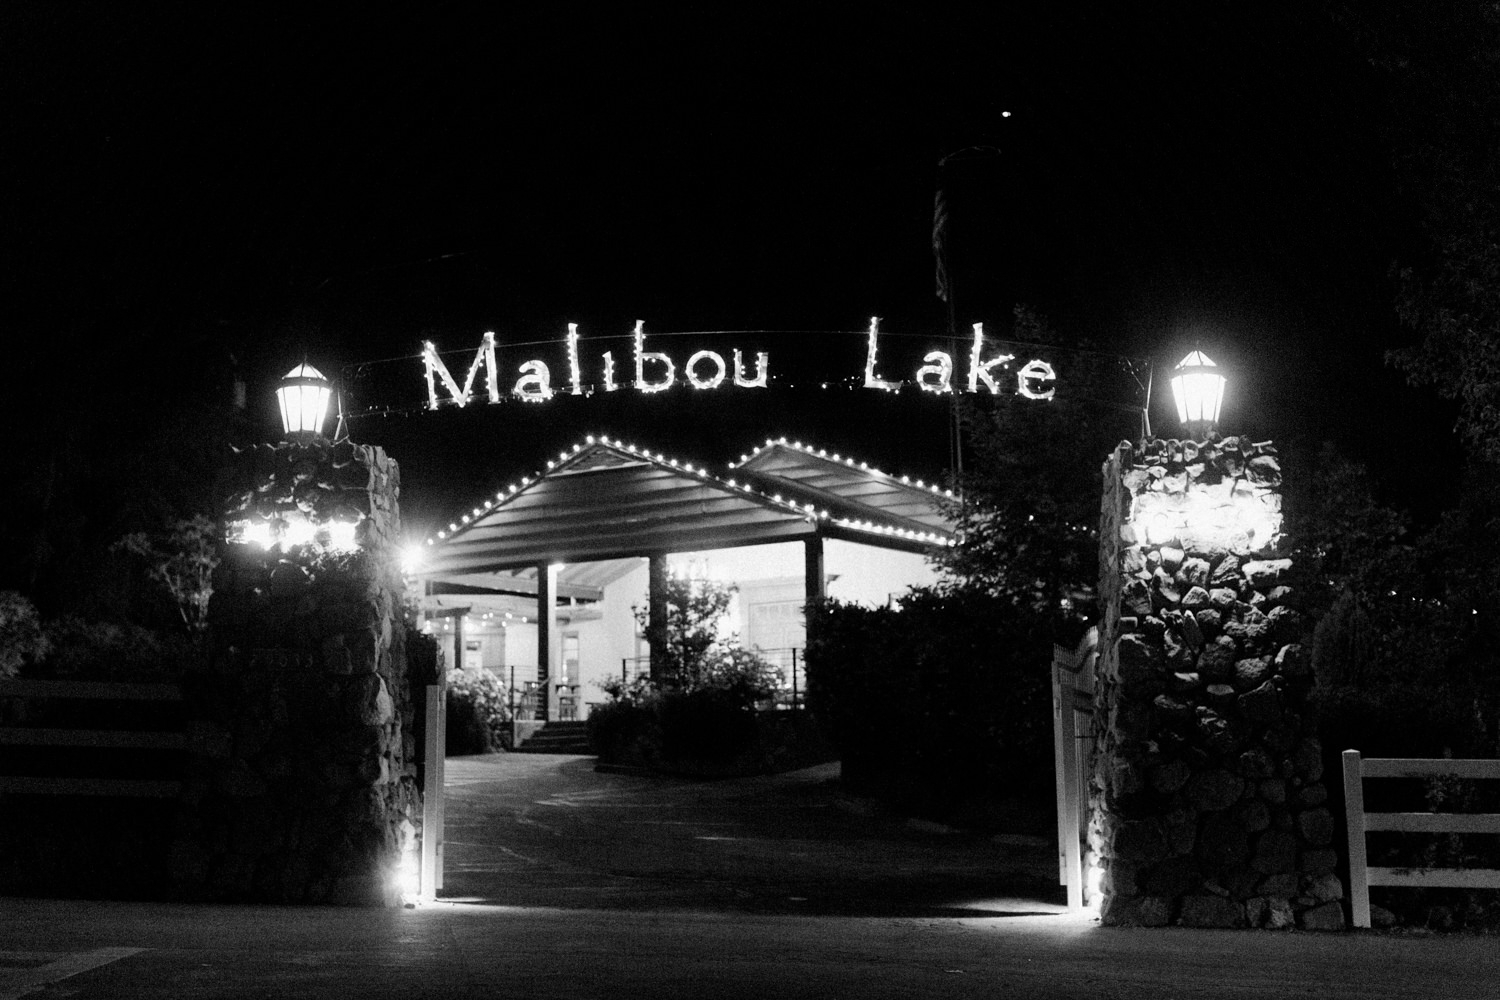 malibou-lake-wedding-venue-malibu-event-planner-114.jpg